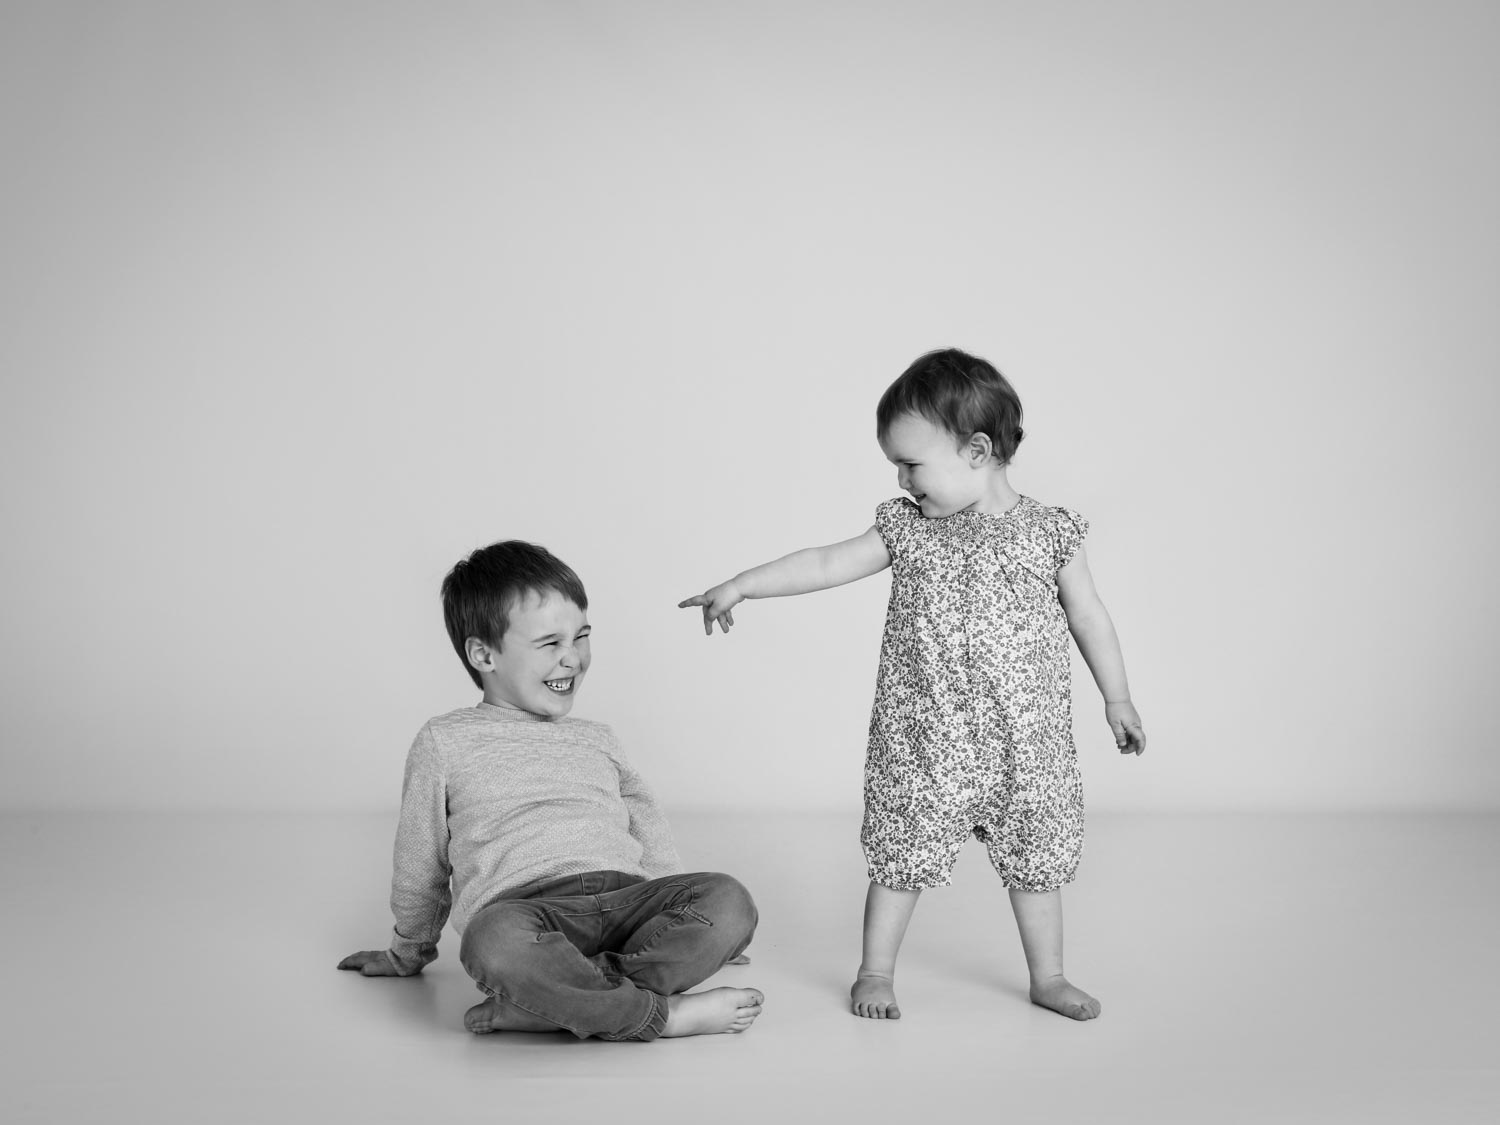 Little girl pointing in the studio